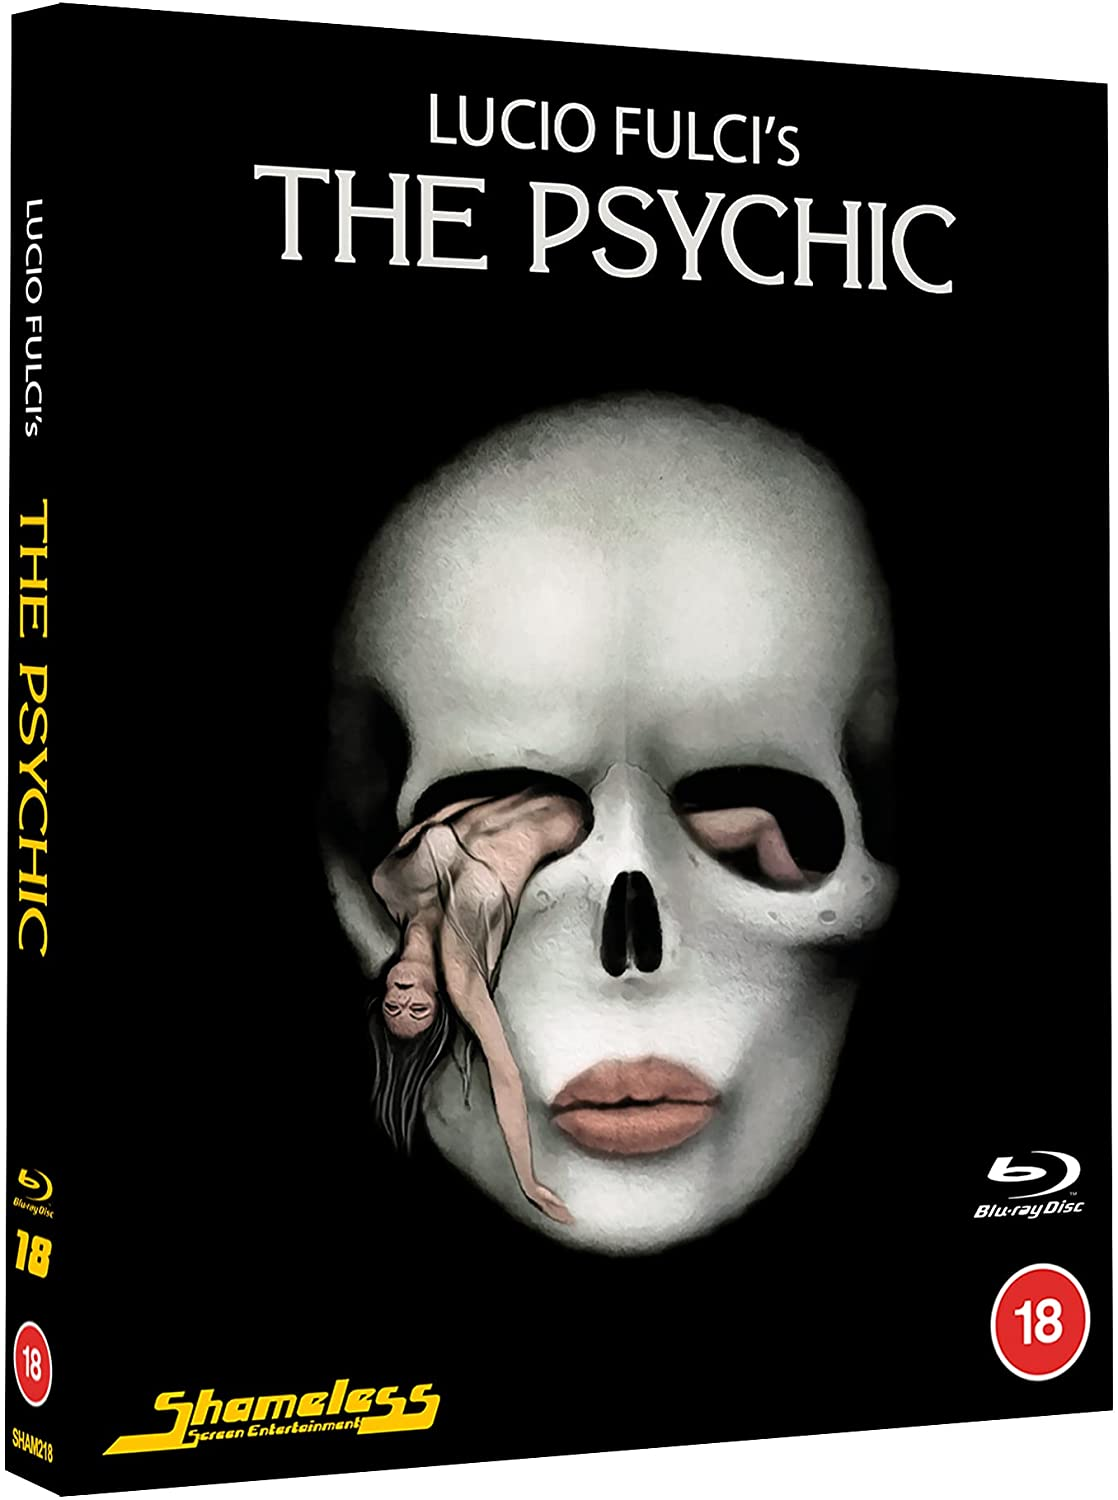 The Psychic UK Blu-Ray Cover 1